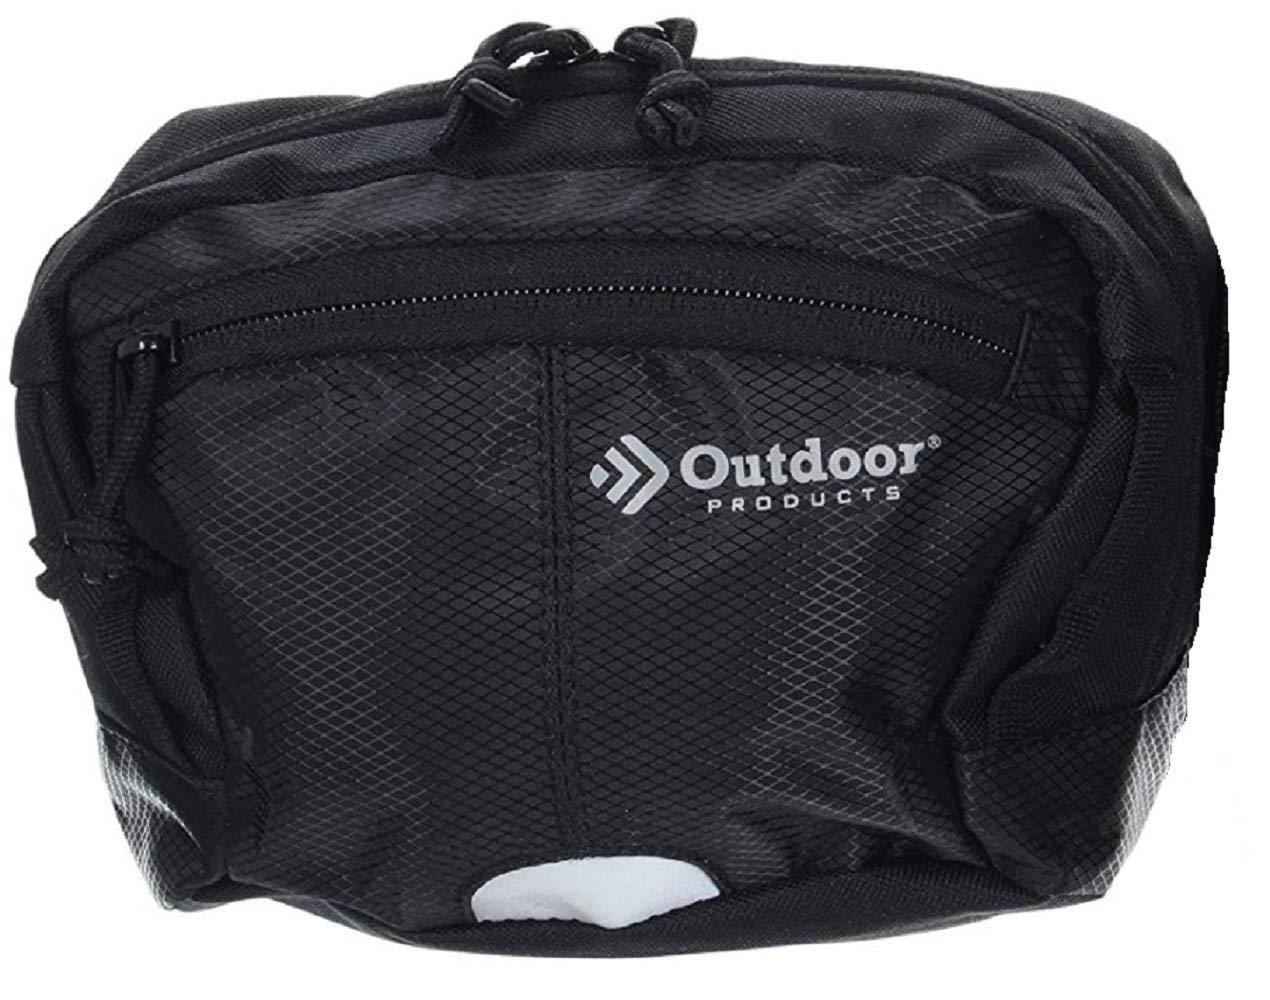 Outdoor Products Essential Waist Pack